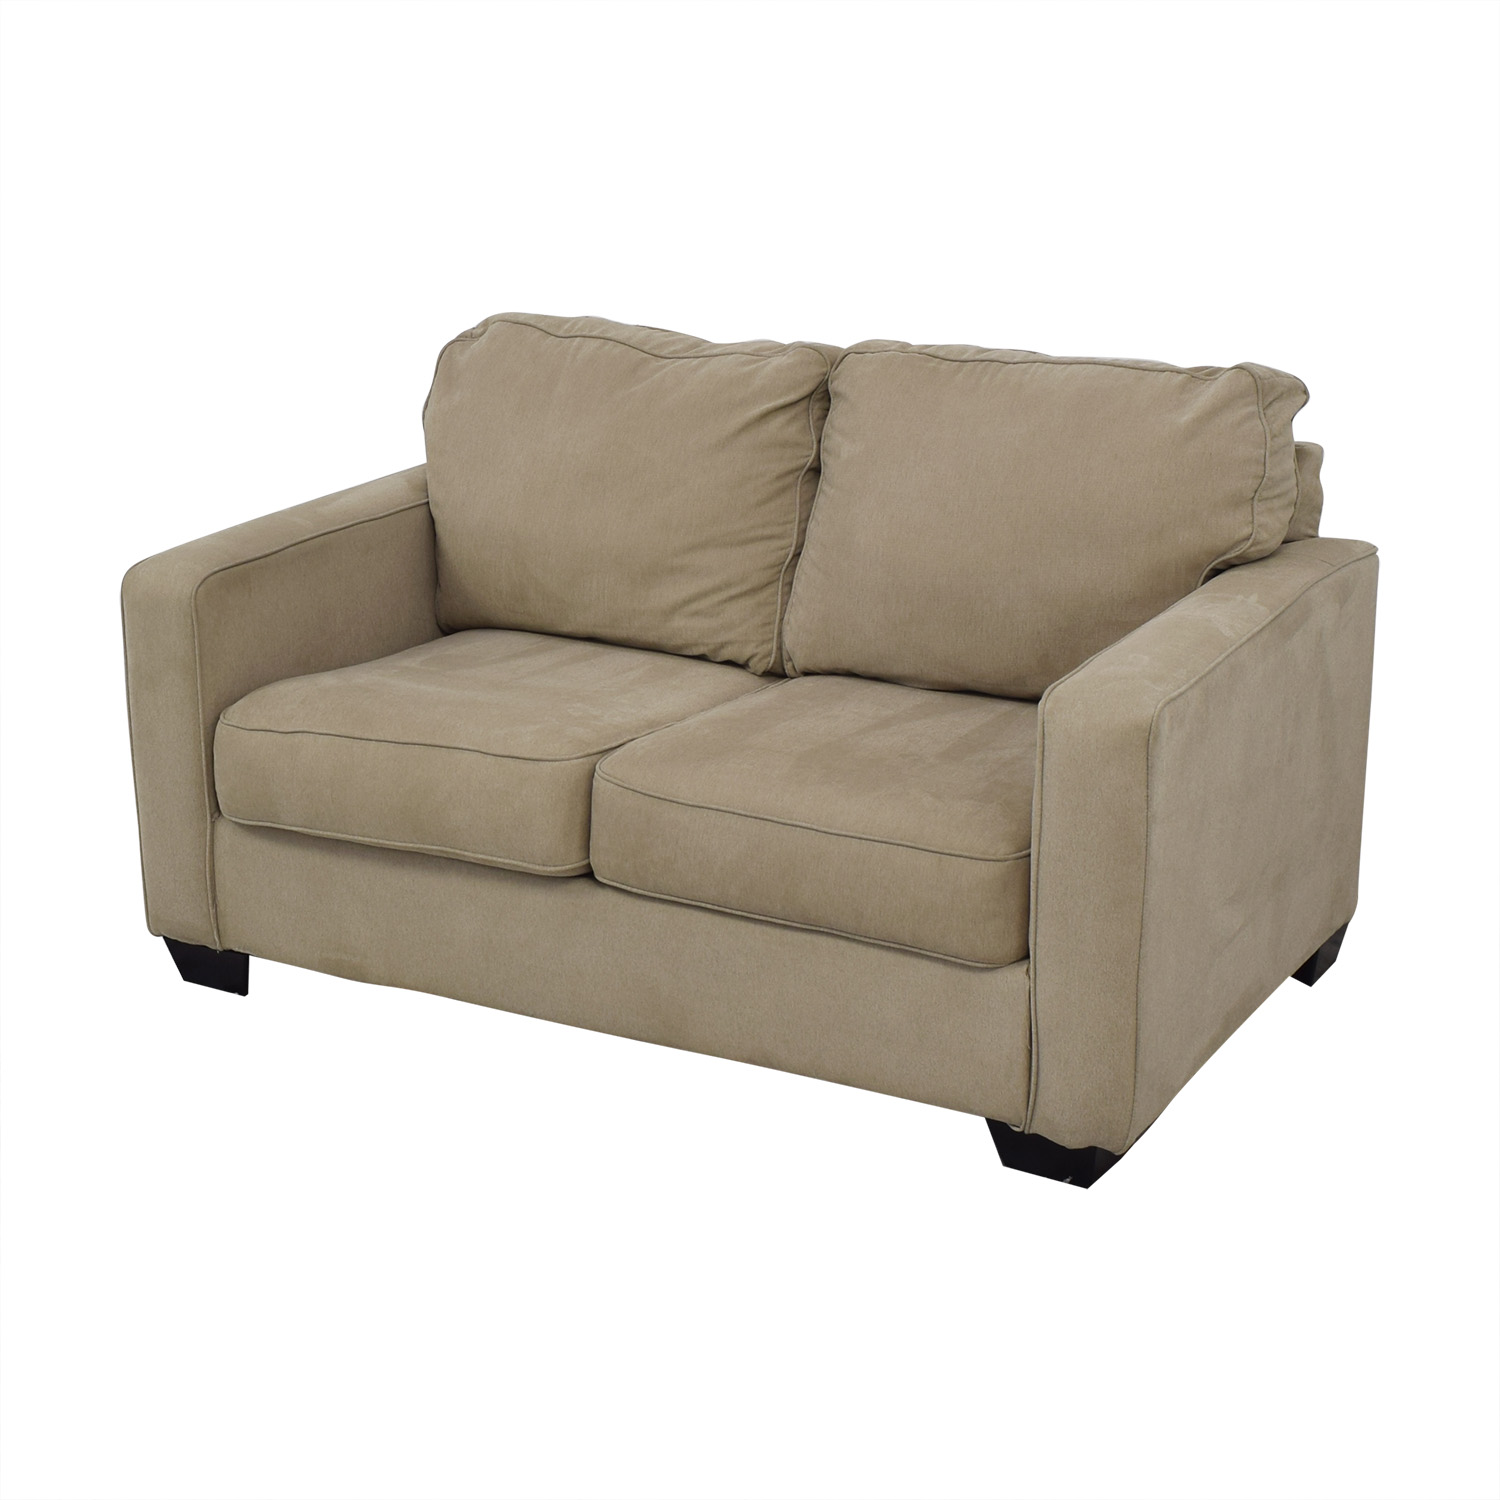 Jennifer Furniture Jennifer Furniture Alenya Loveseat on sale